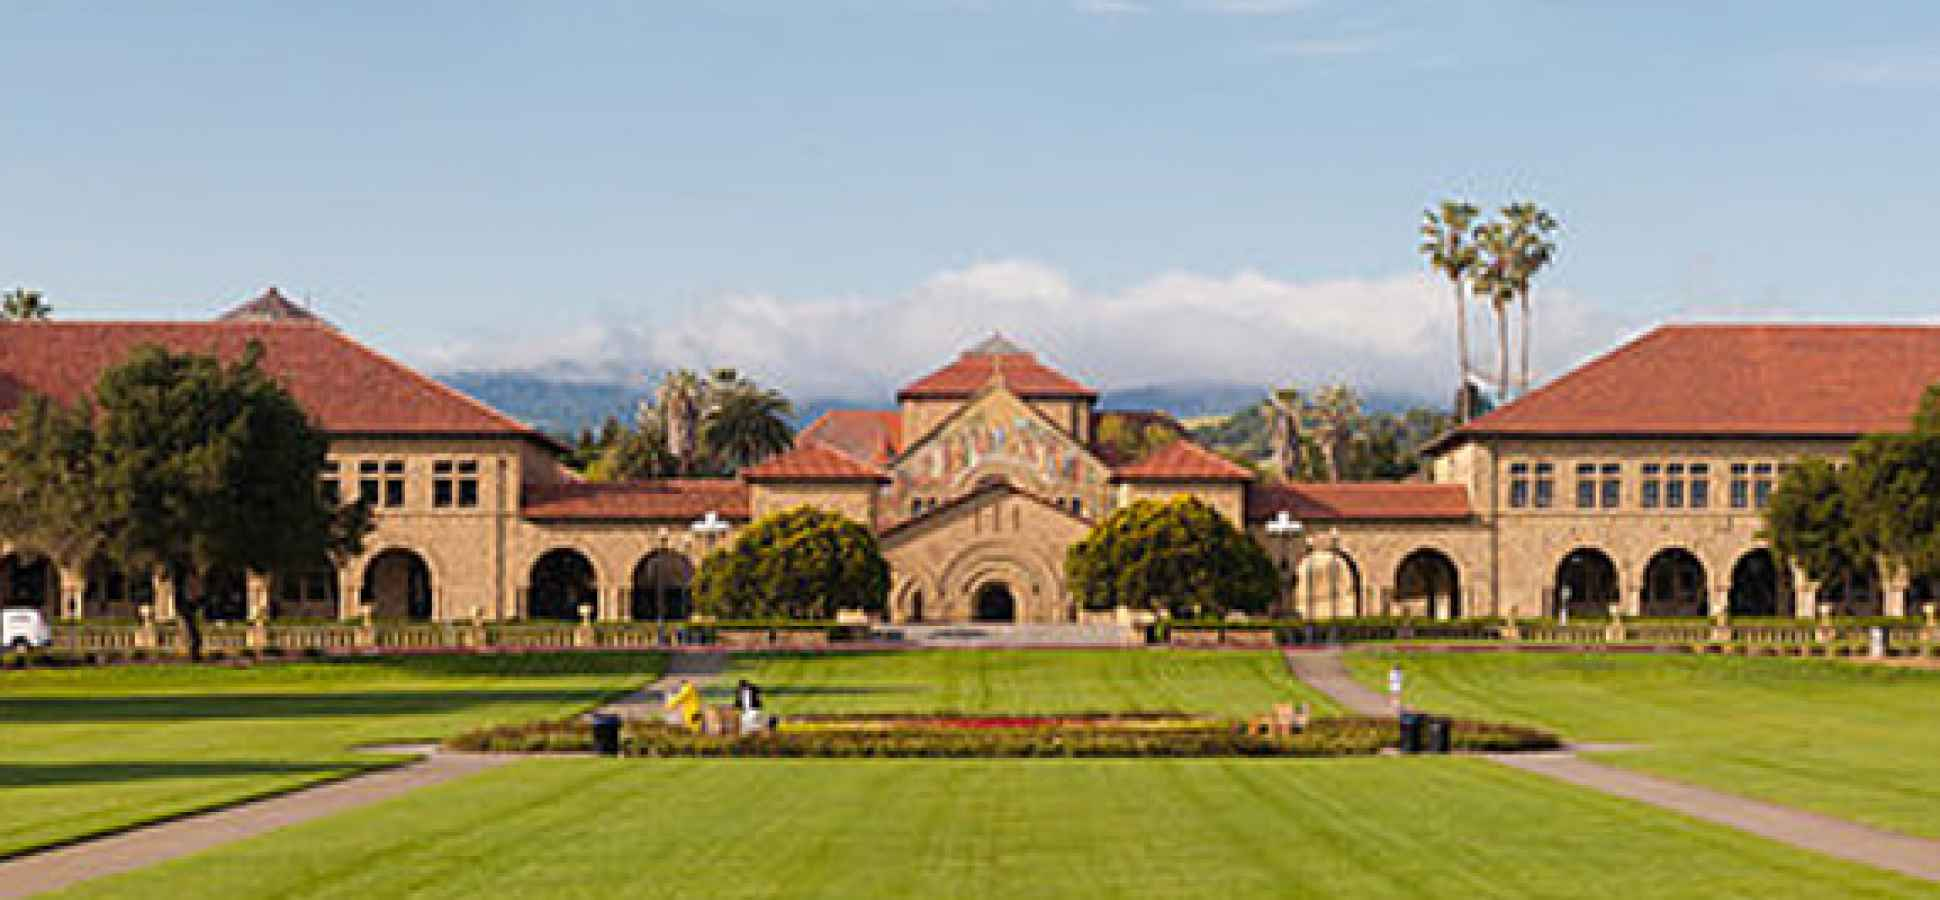 Learn How to Start a Company Stanford-Style